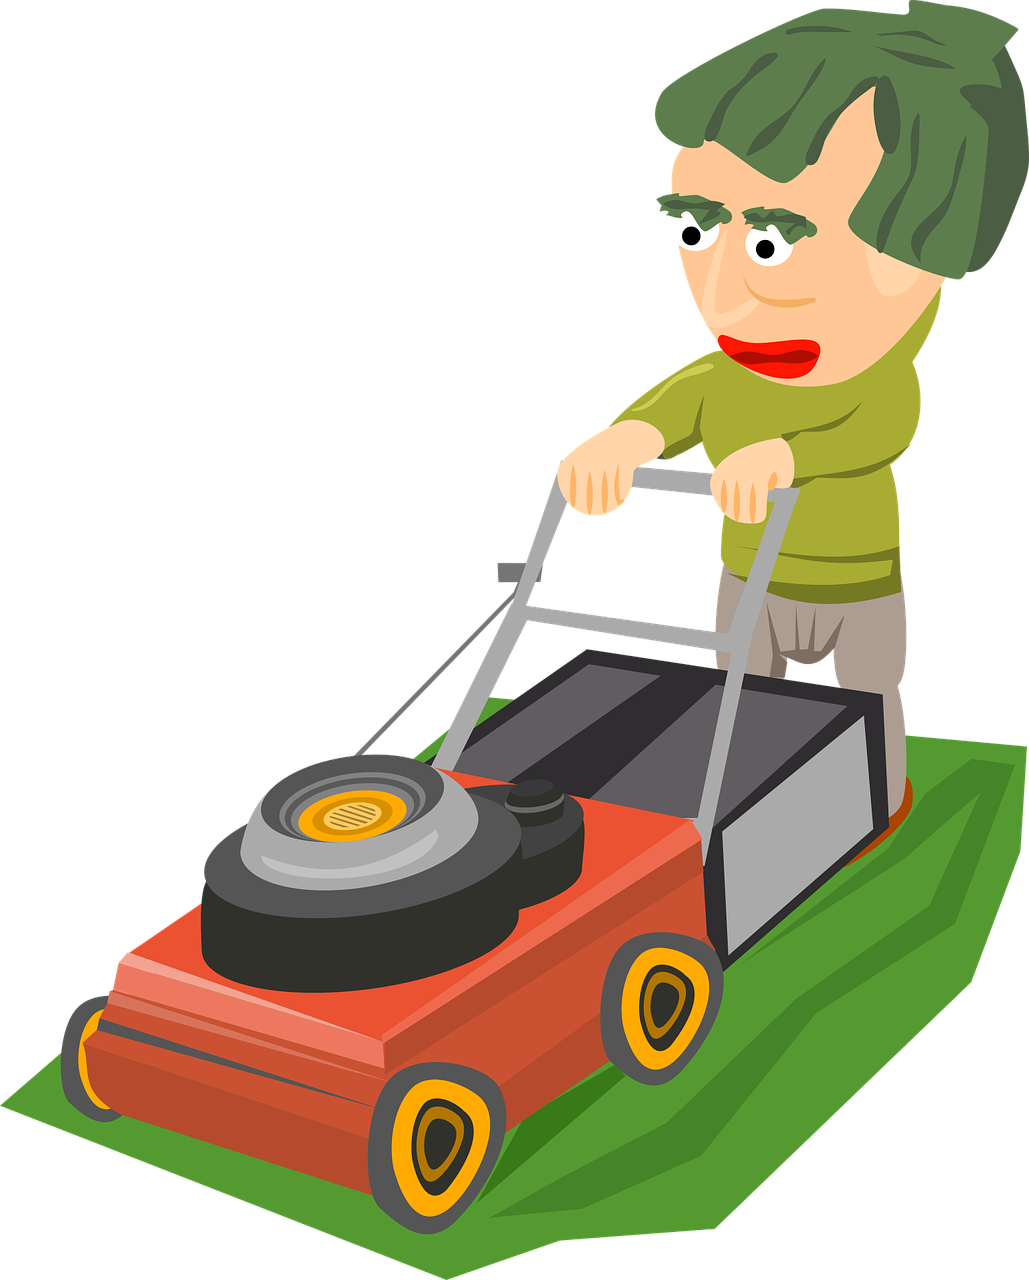 Clipart image of a man mowing a lawn